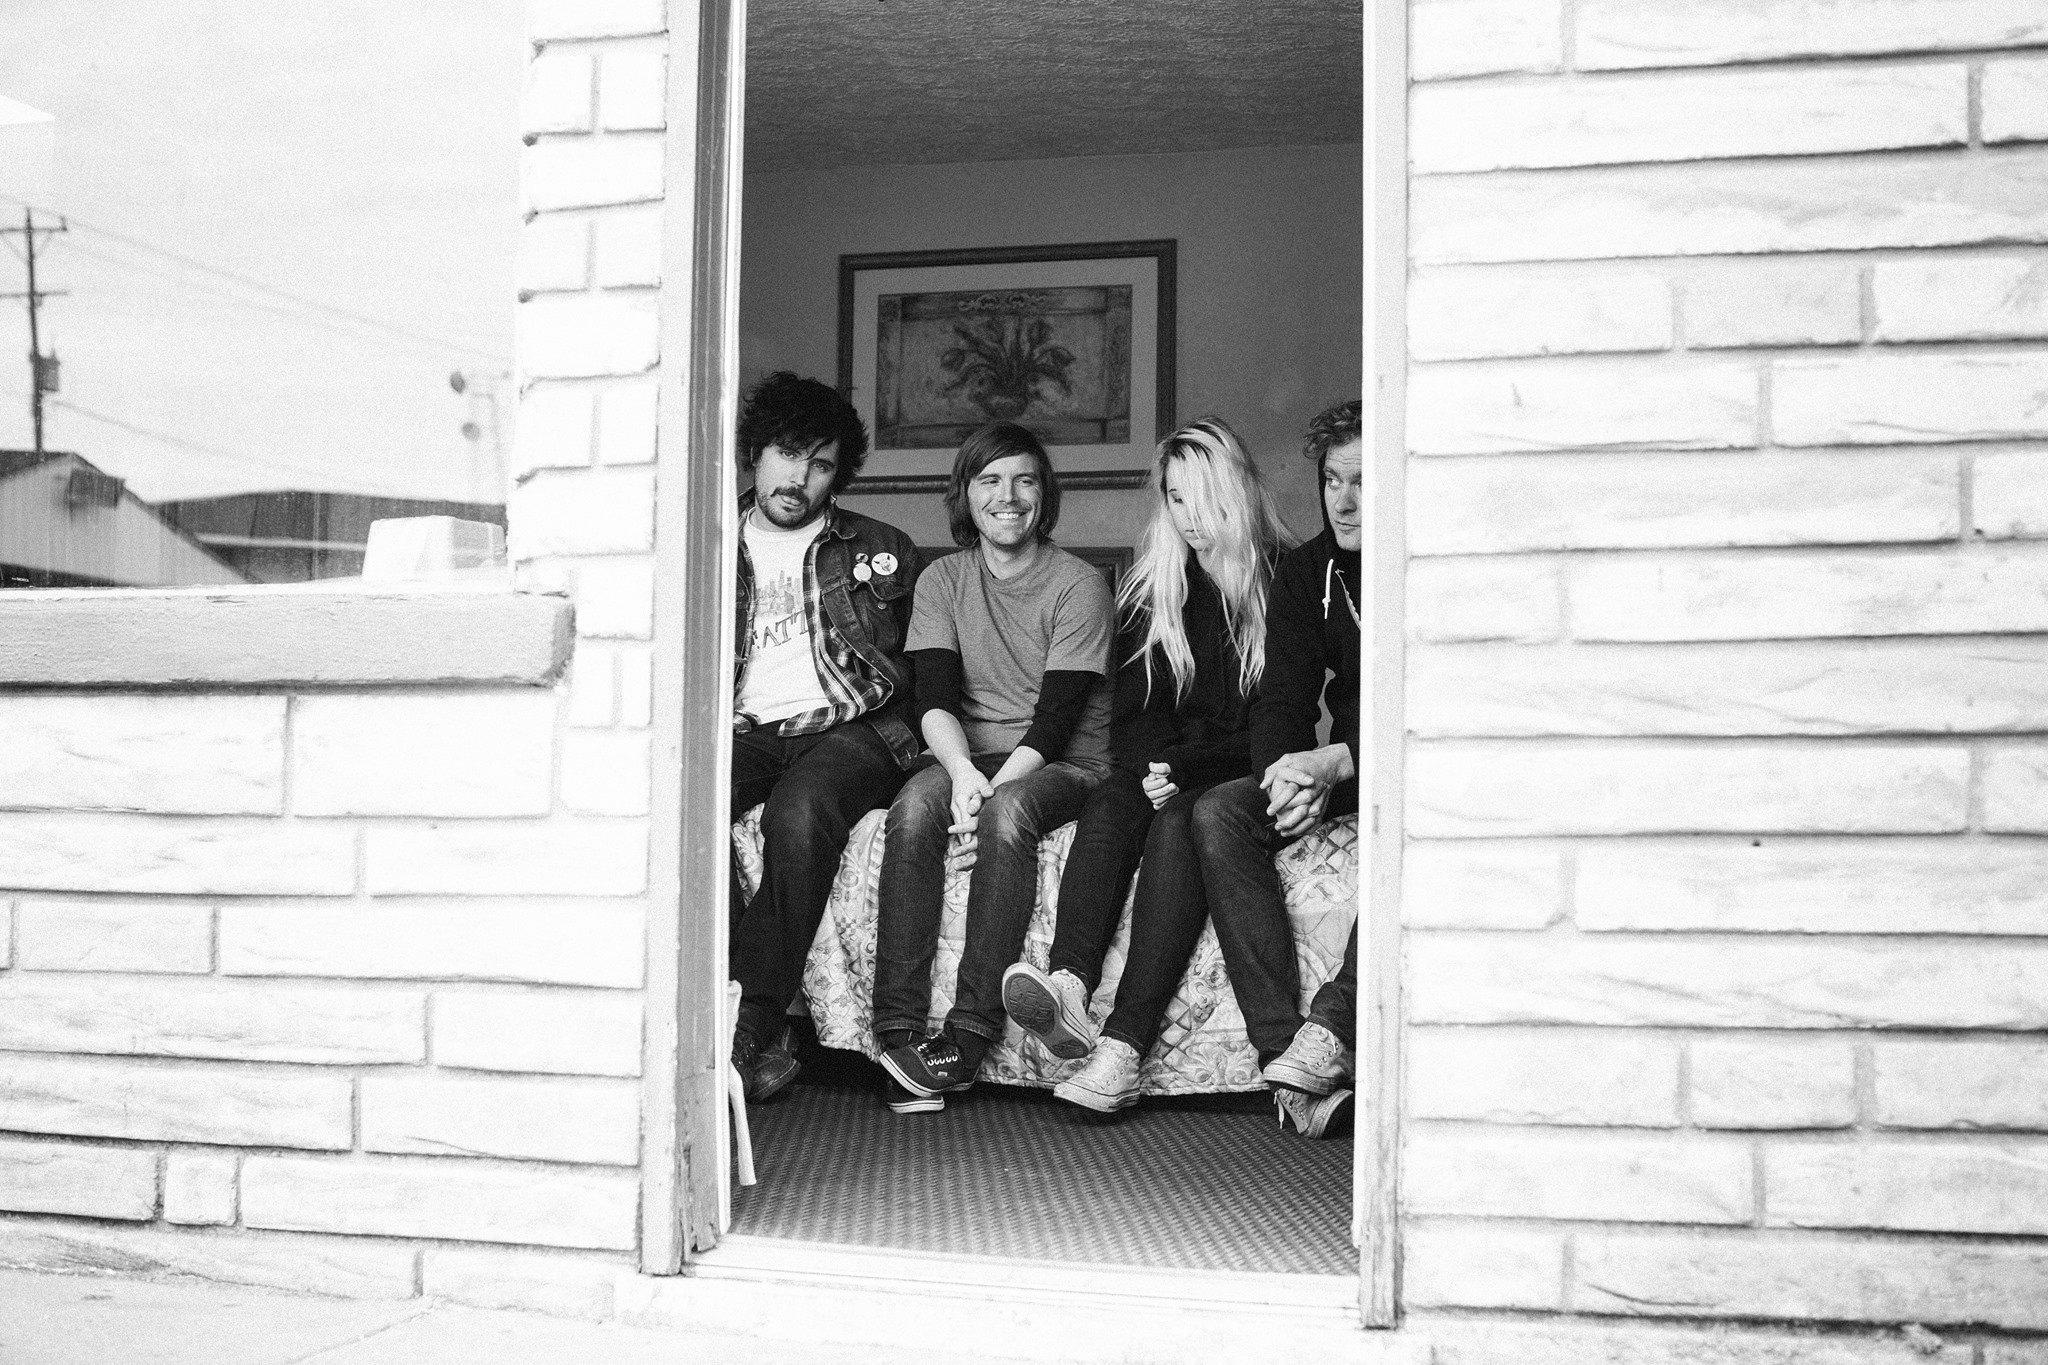 Bully is an indie-rock quartet from Nashville.